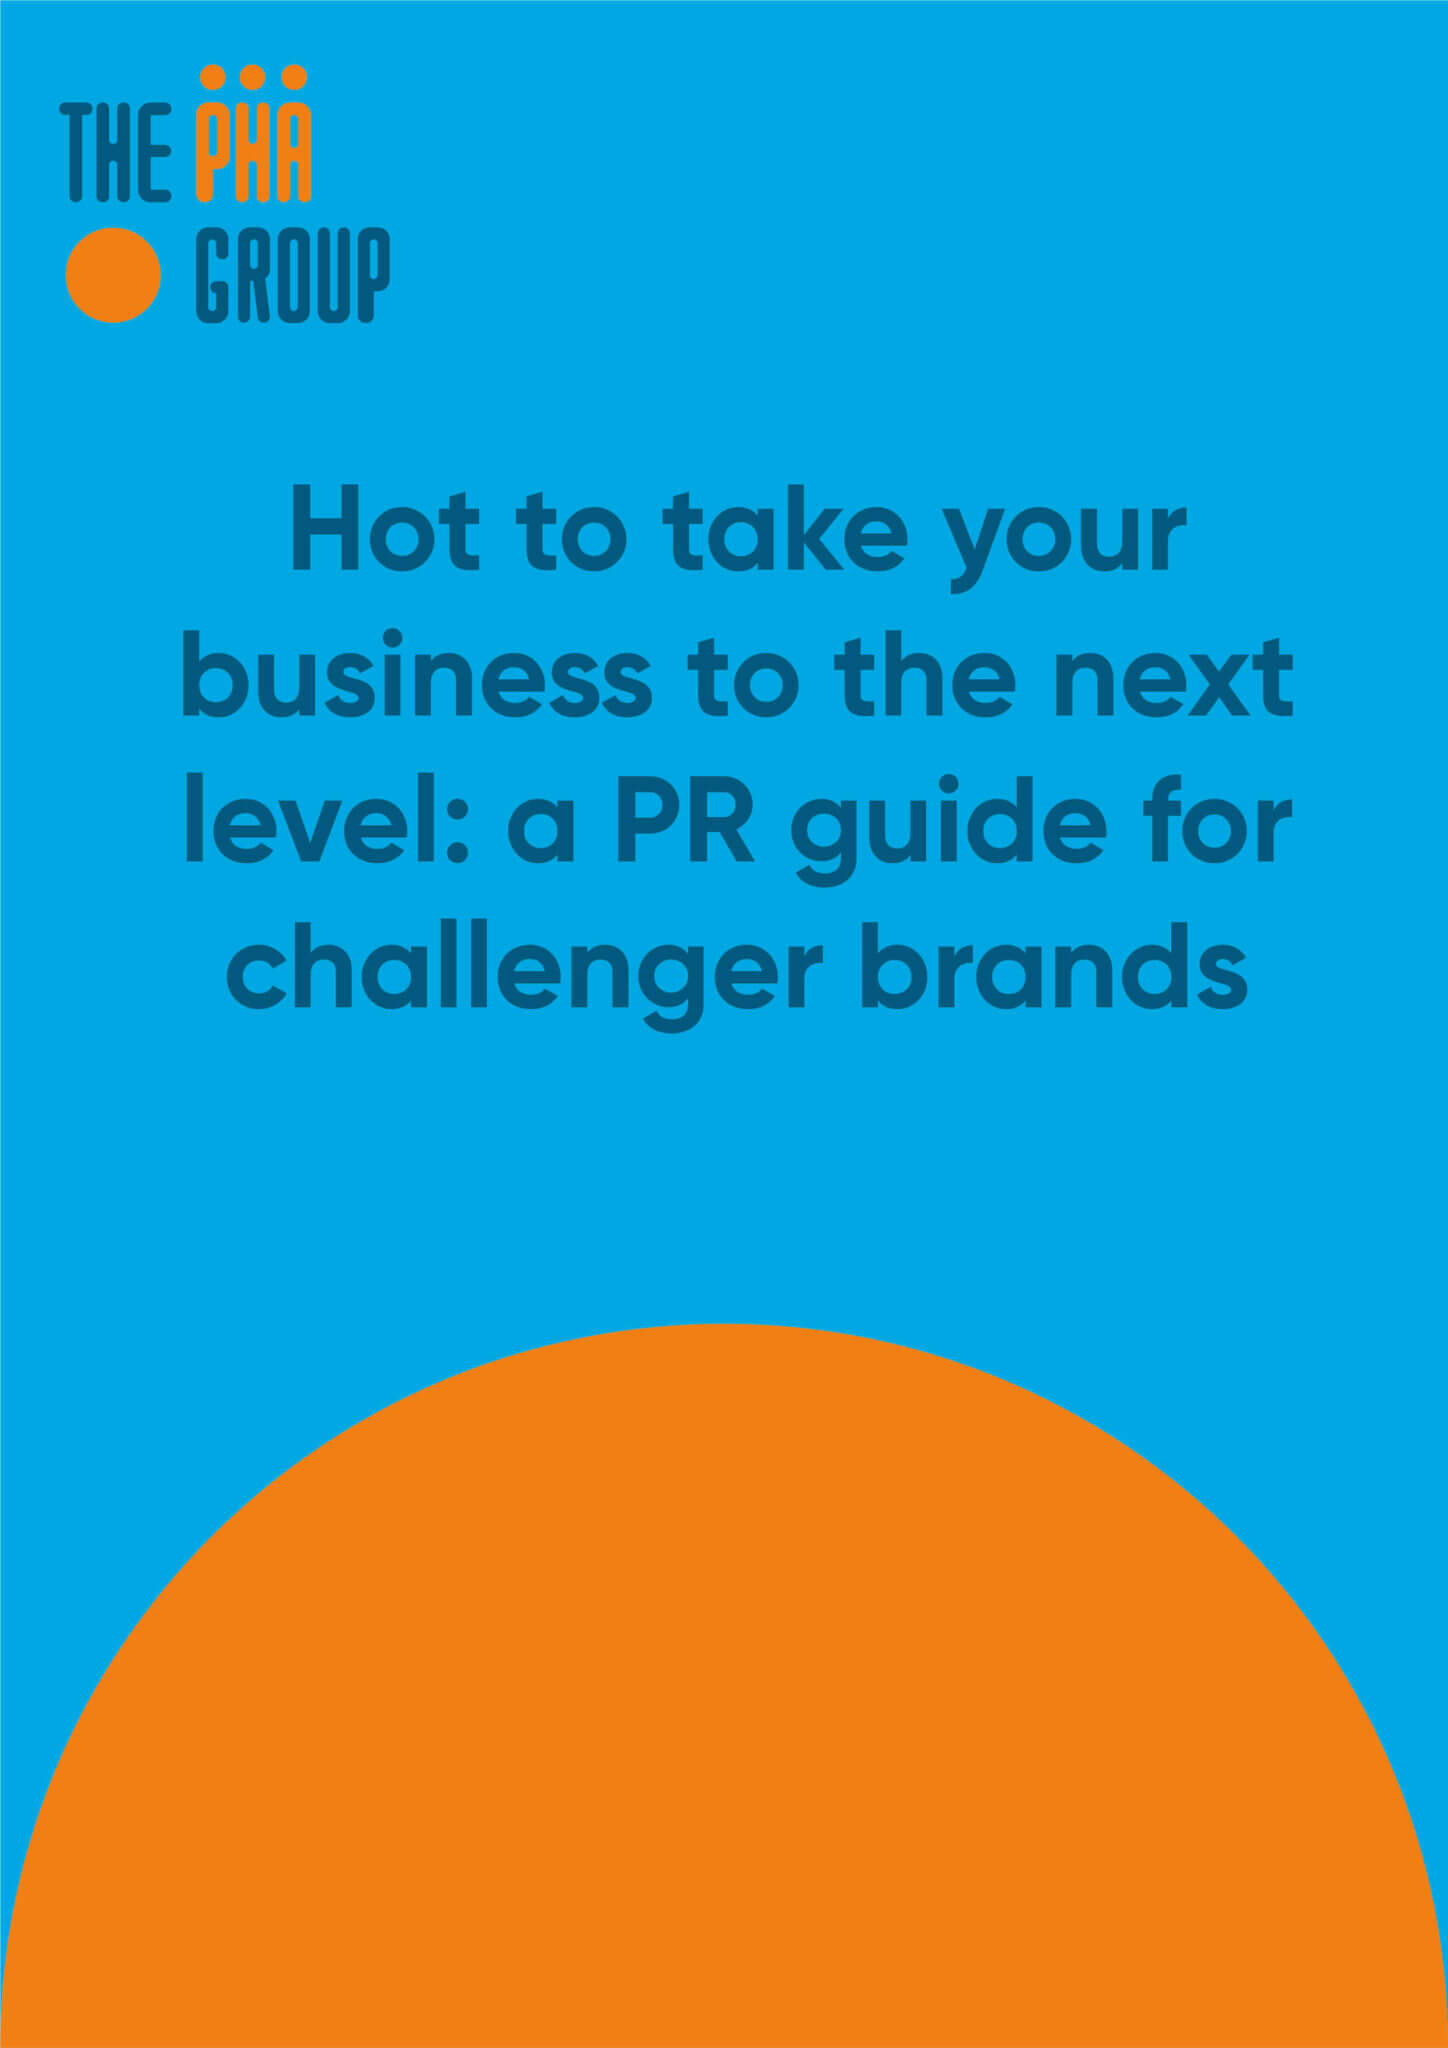 How to take your business to the next level: a PR guide for challenger brands